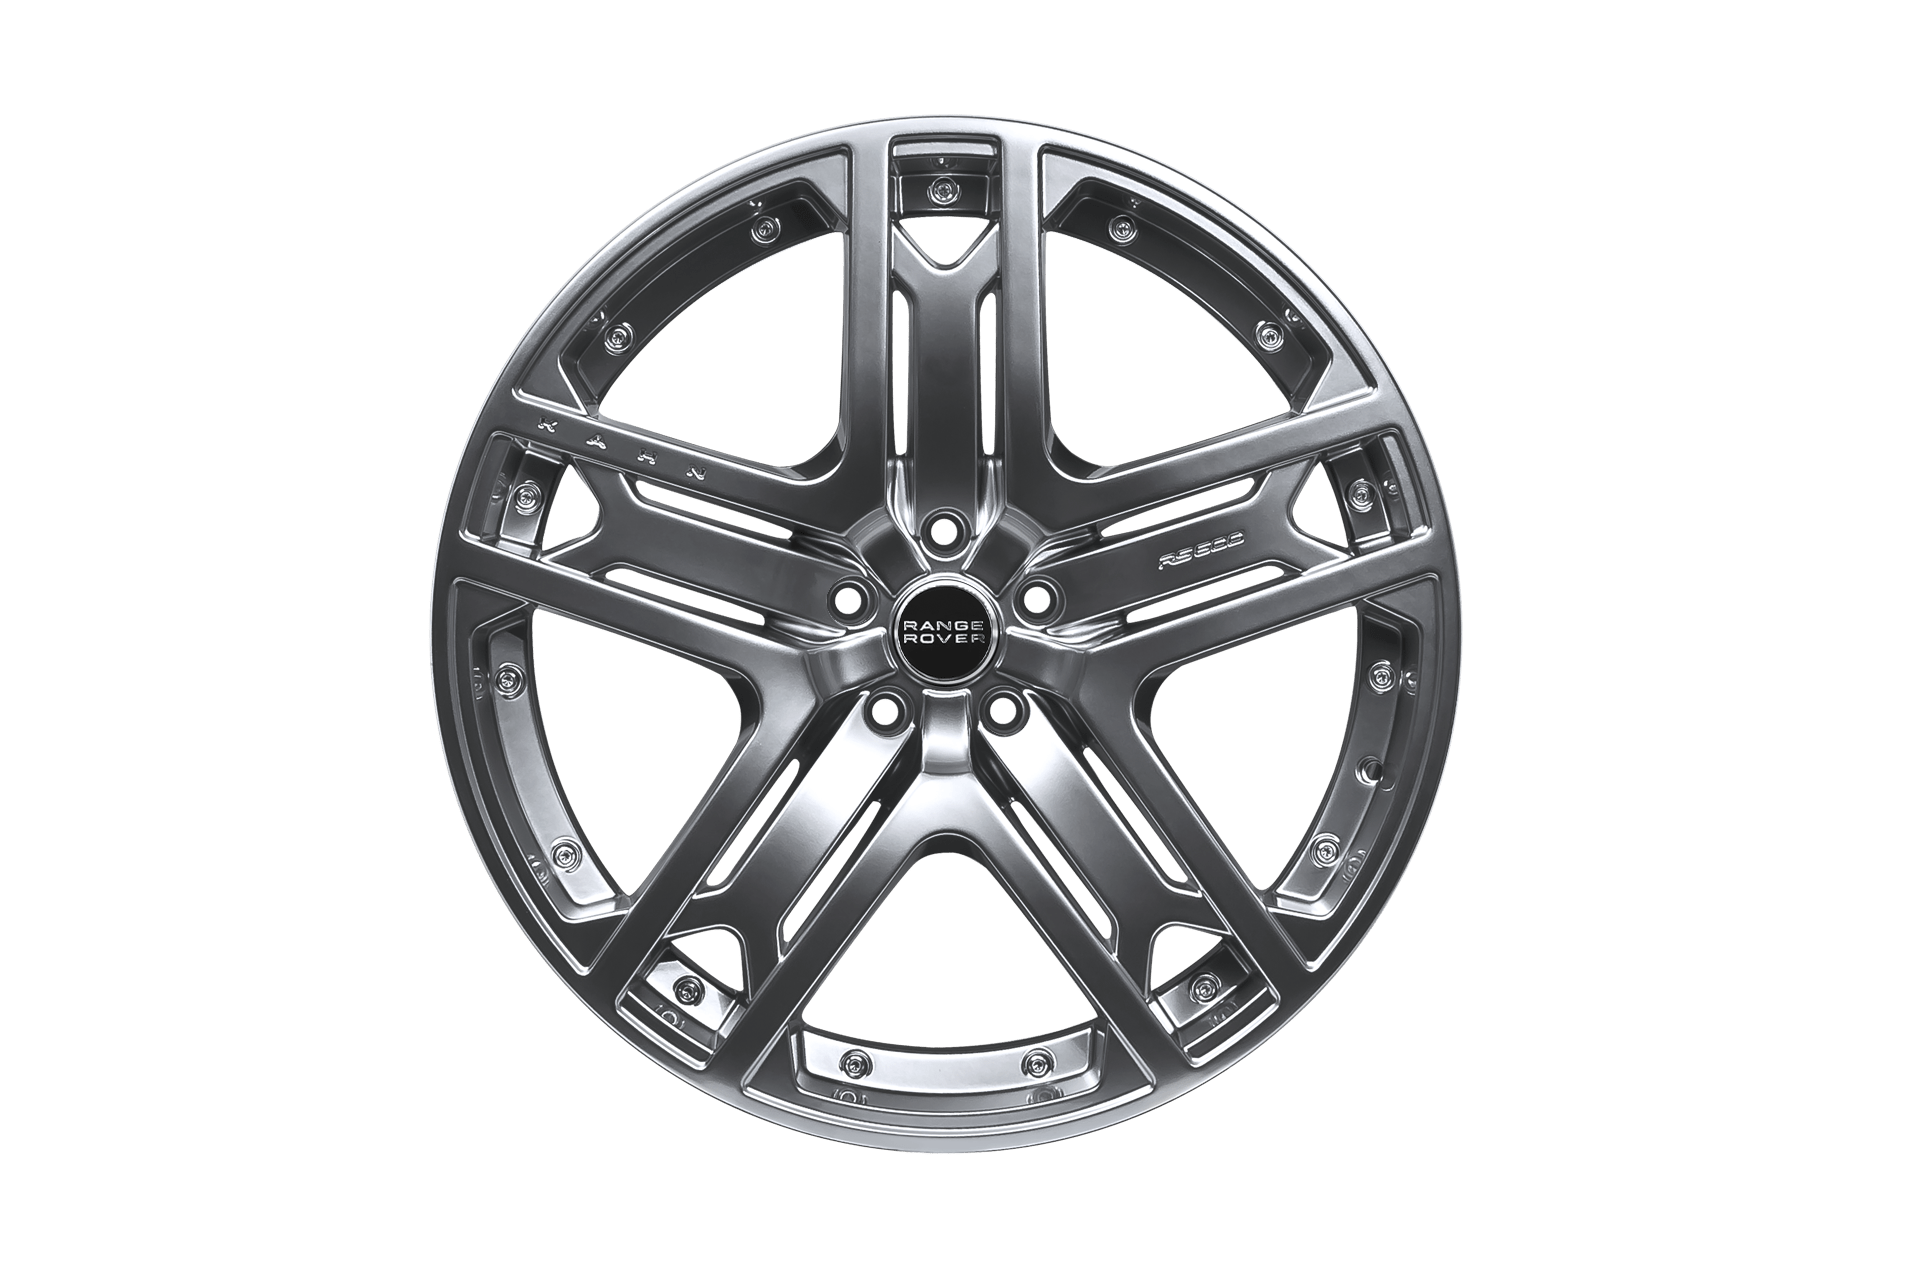 Range Rover Sport (2018-Present) Rs600 Light Alloy Wheels by Kahn - Image 2364